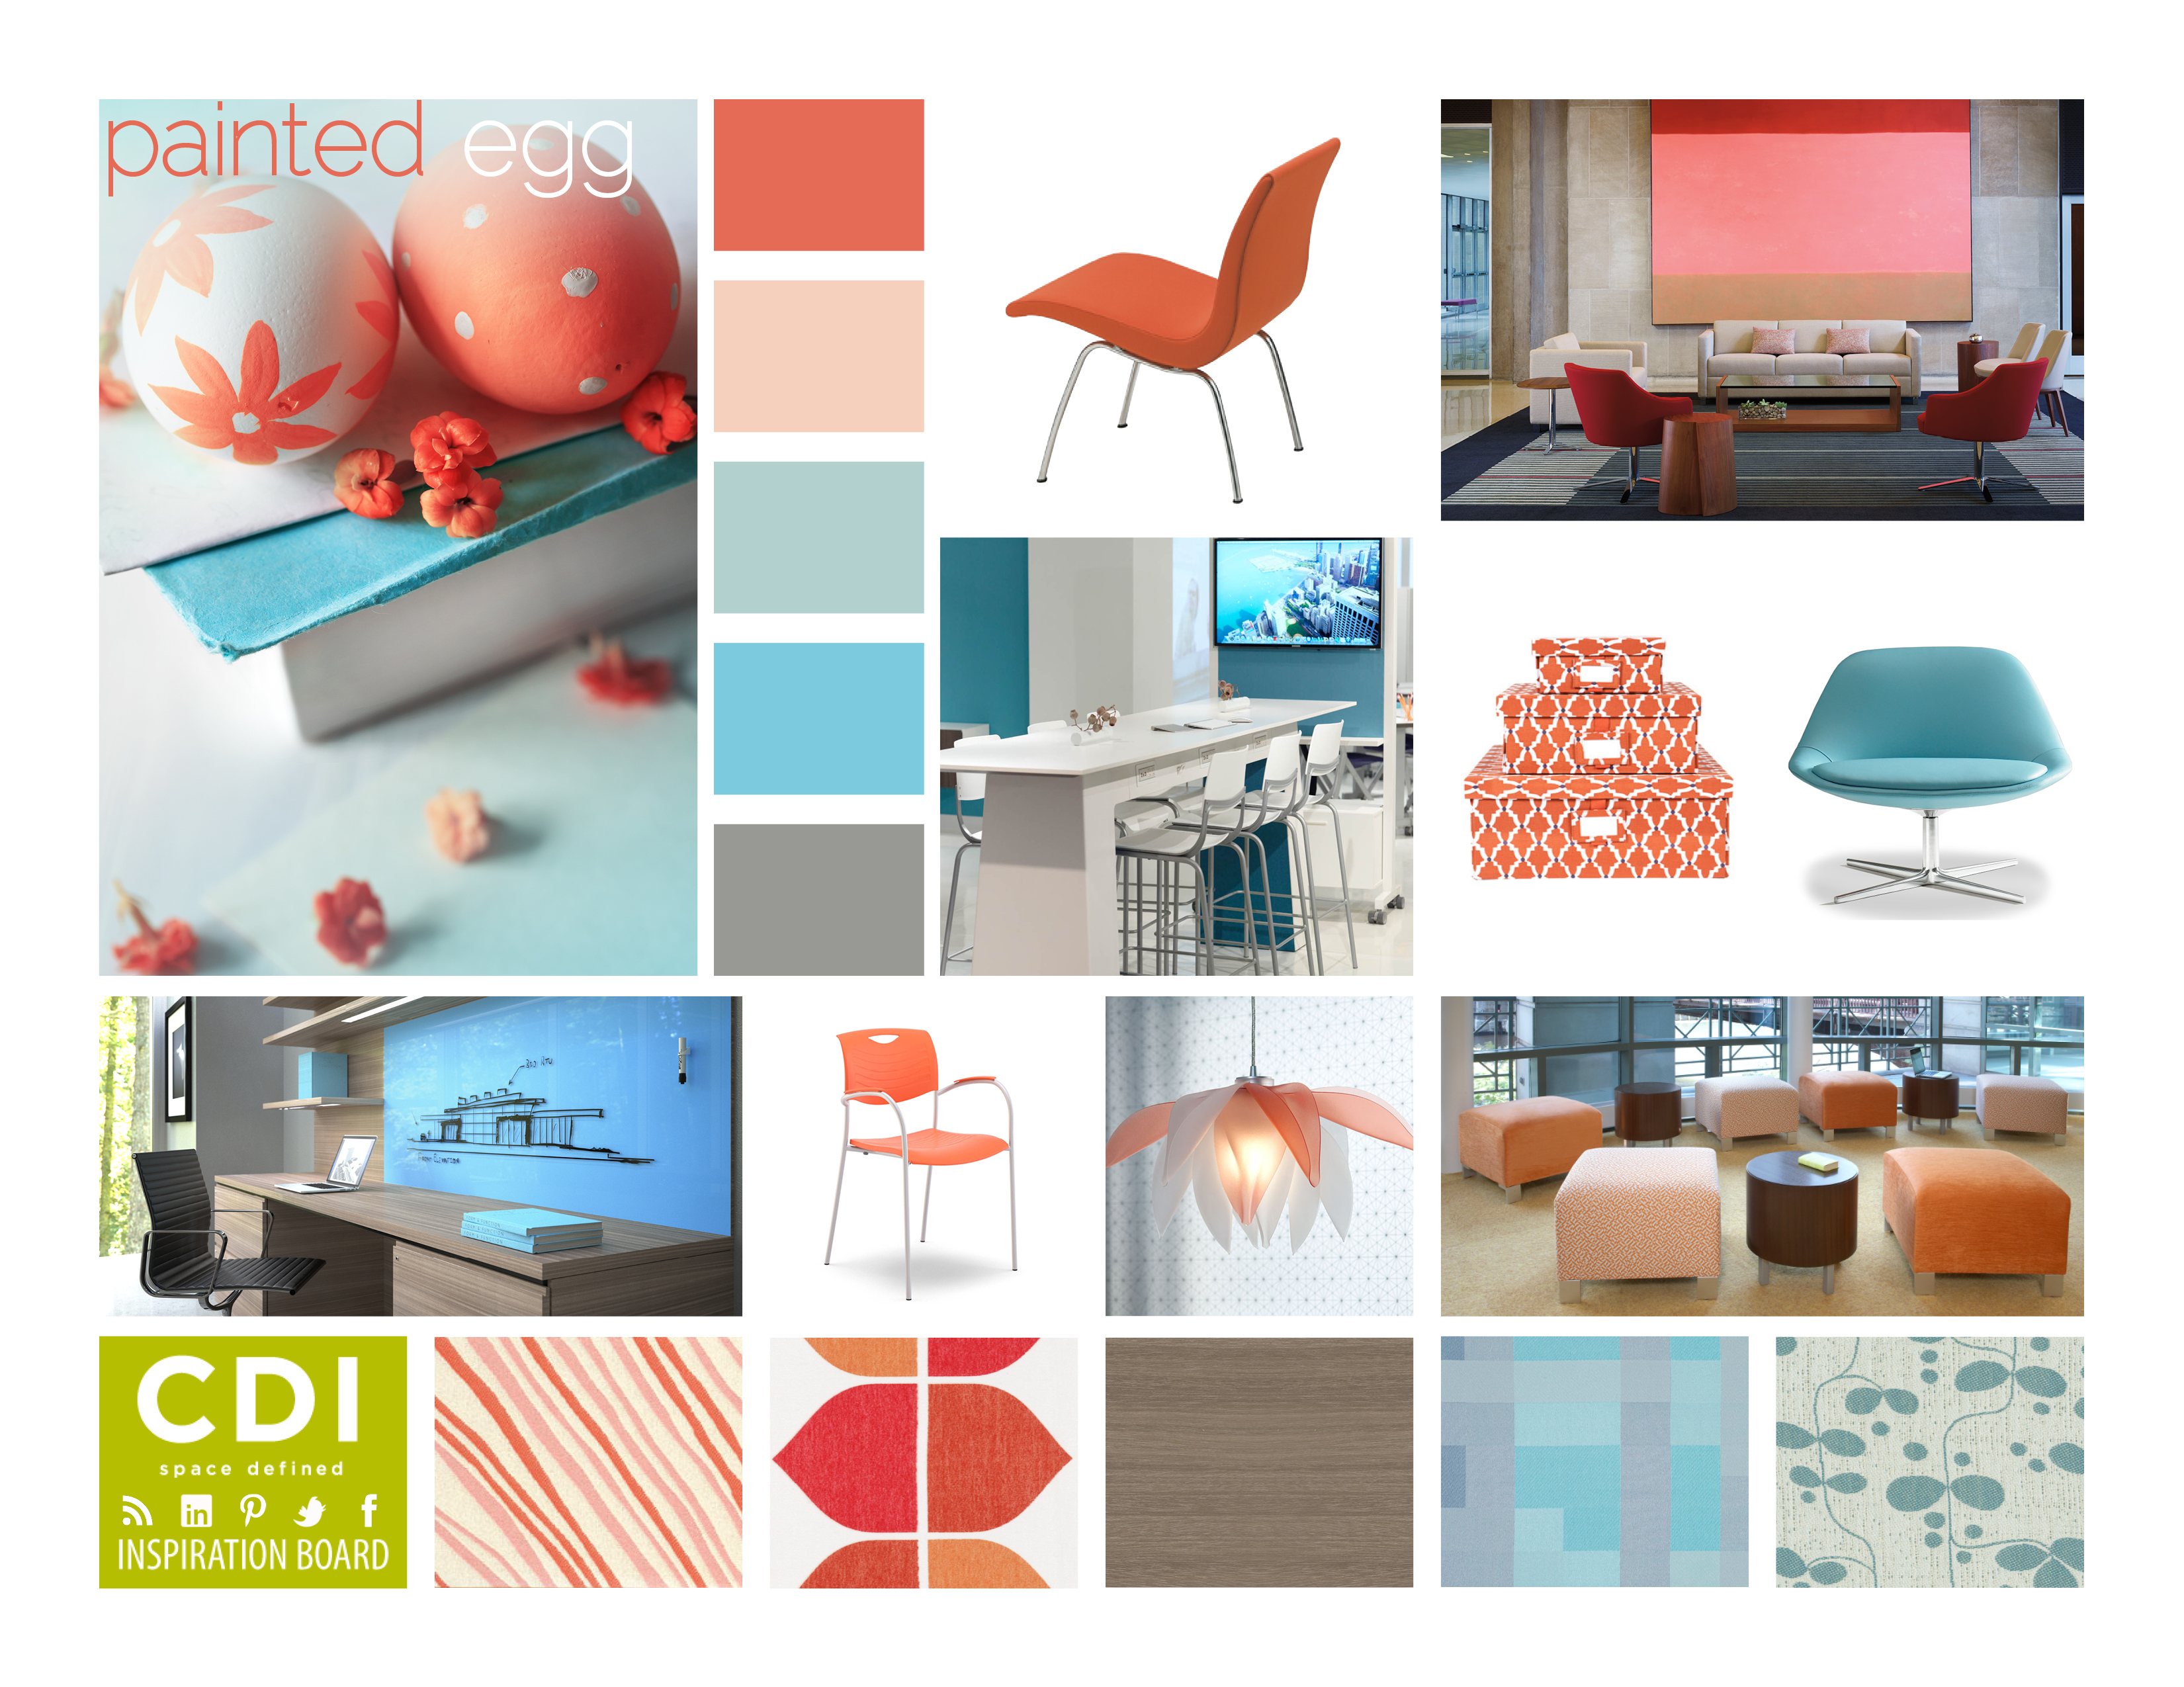 Inspiration board painted egg cdi blog for Interior design inspiration 2014